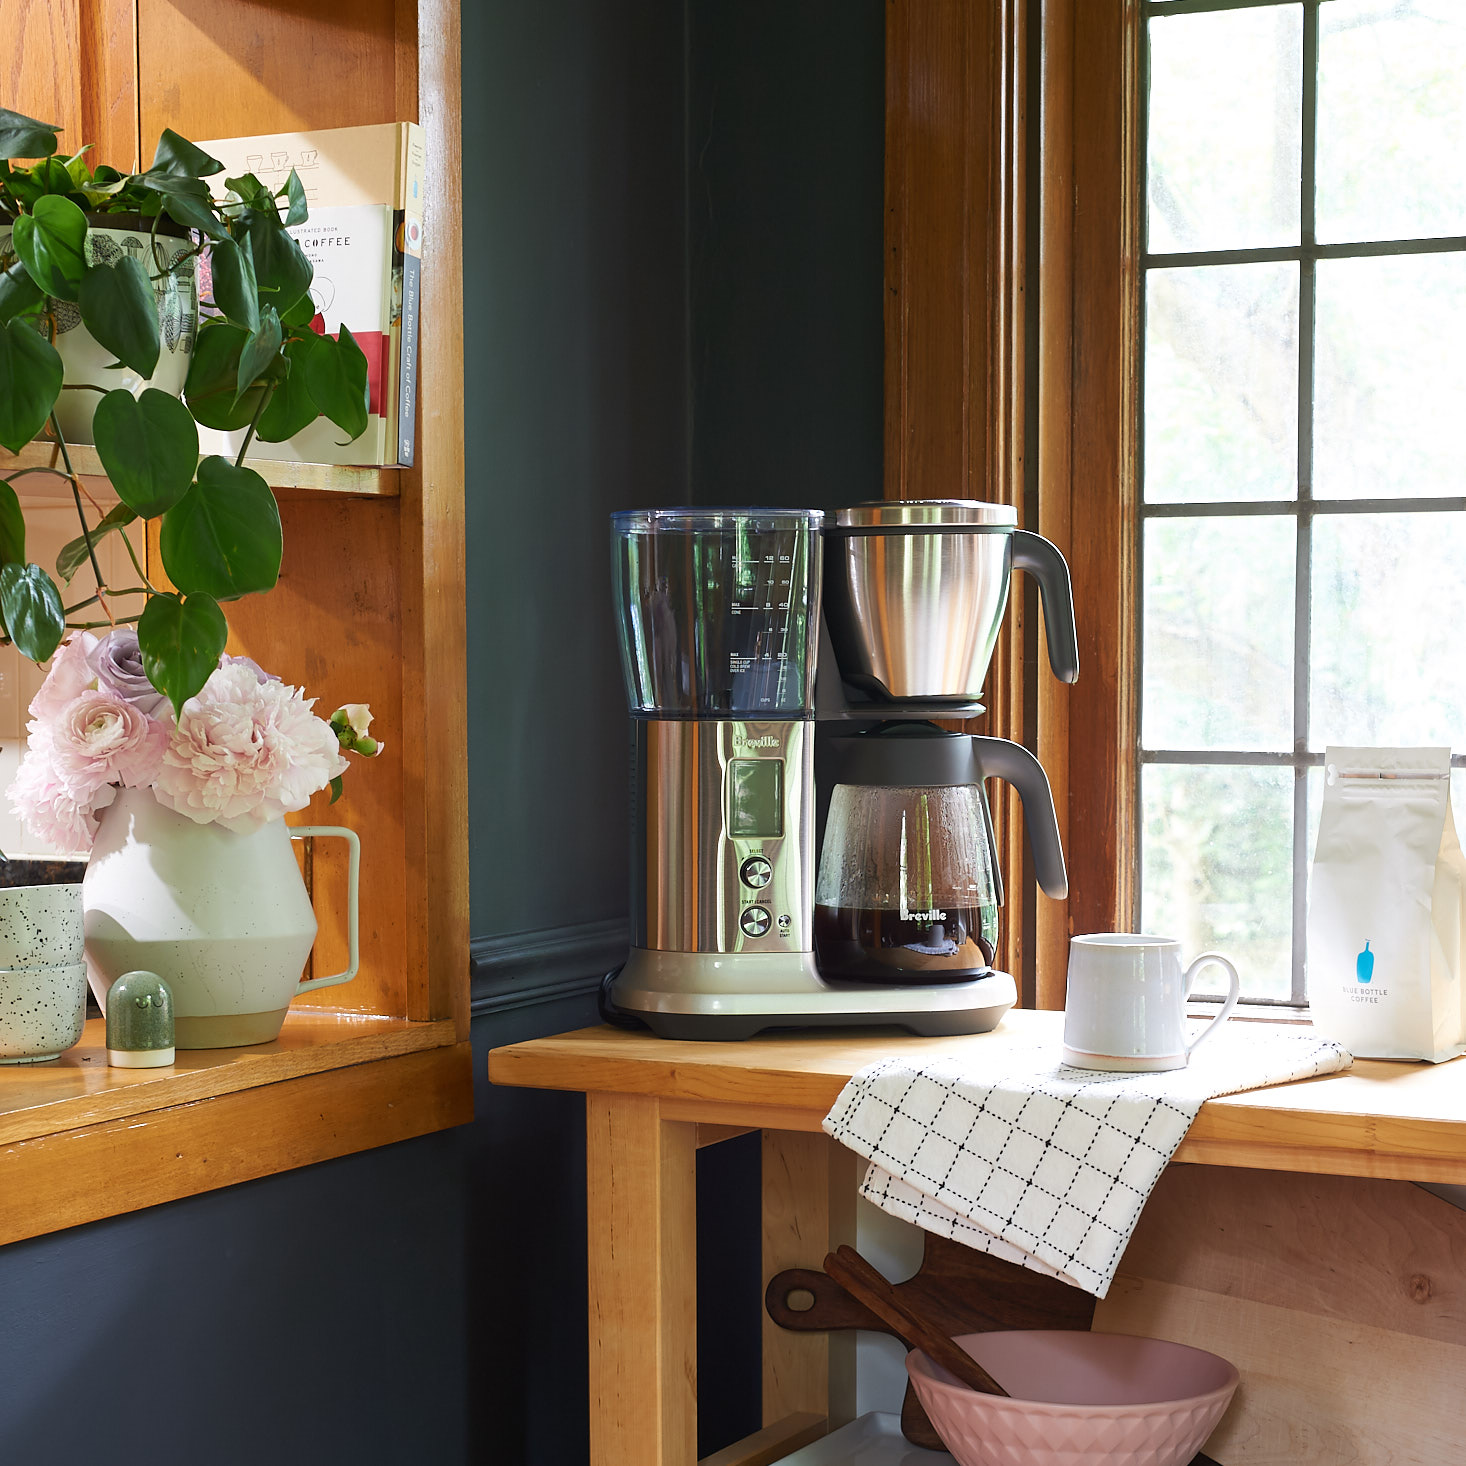 Breville Precision Brewer Glass in Moody Coffee Nook